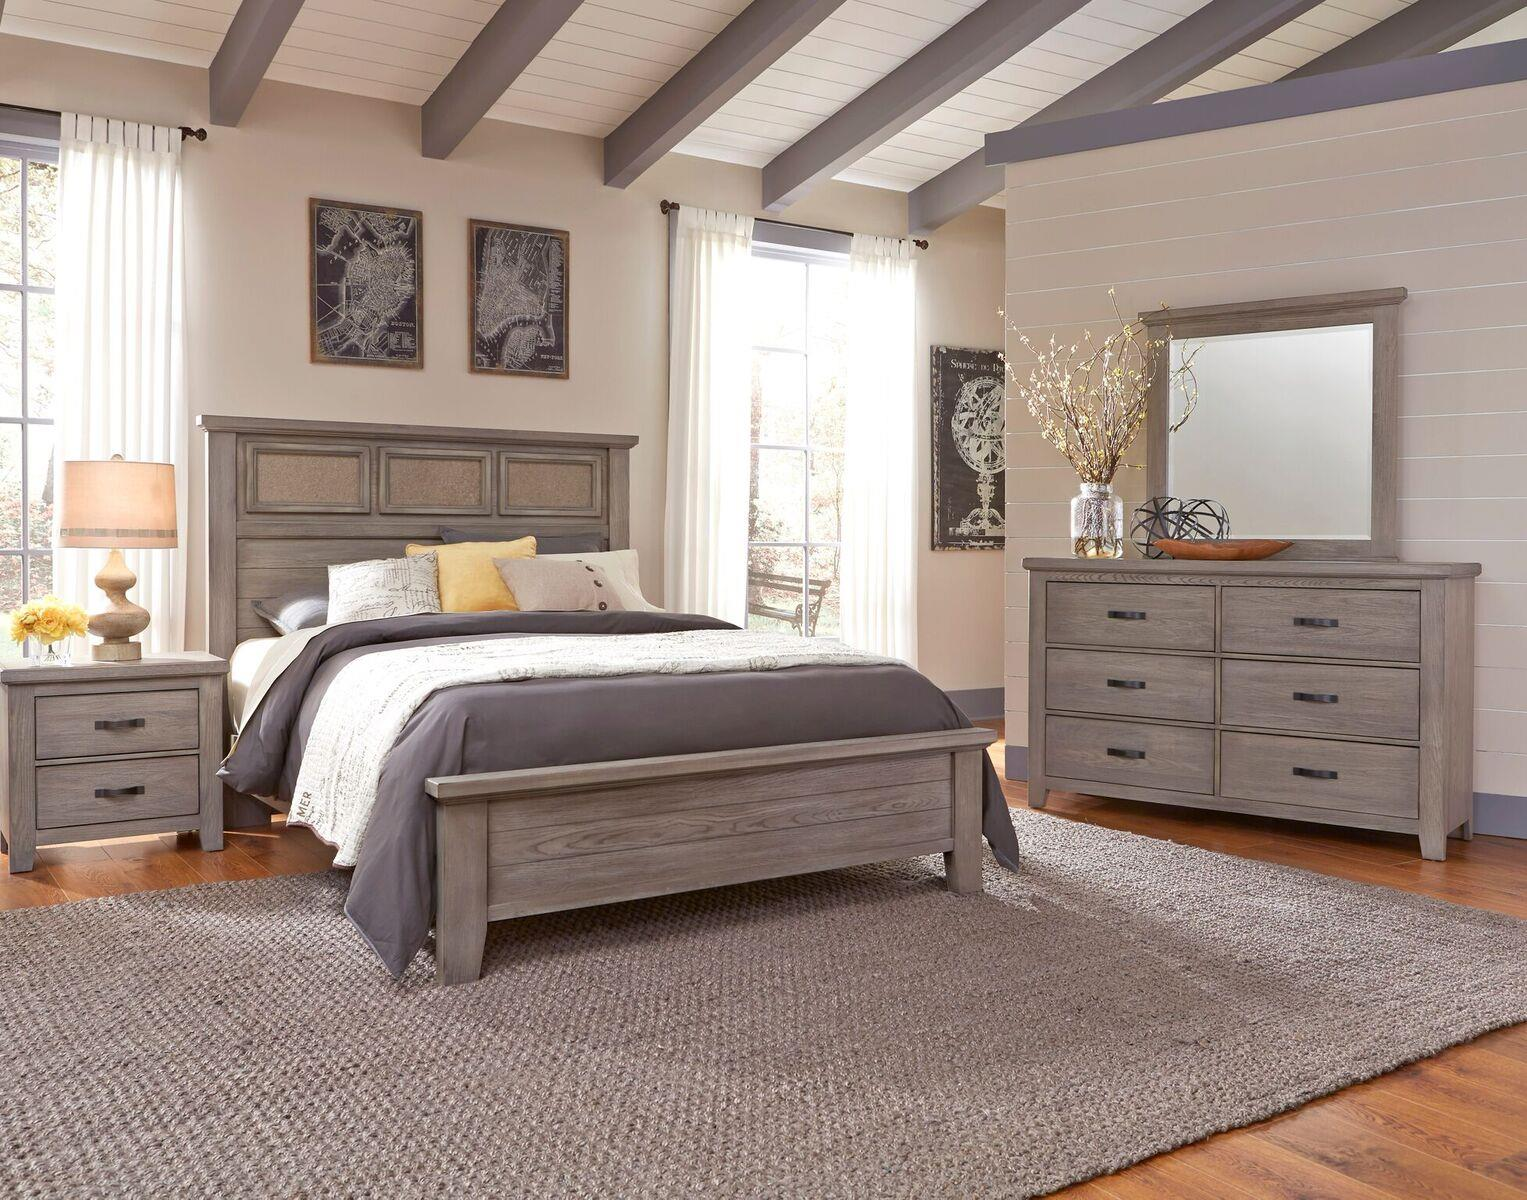 Vaughan bassett cassell park queen bedroom group johnny for Bedroom furniture groups